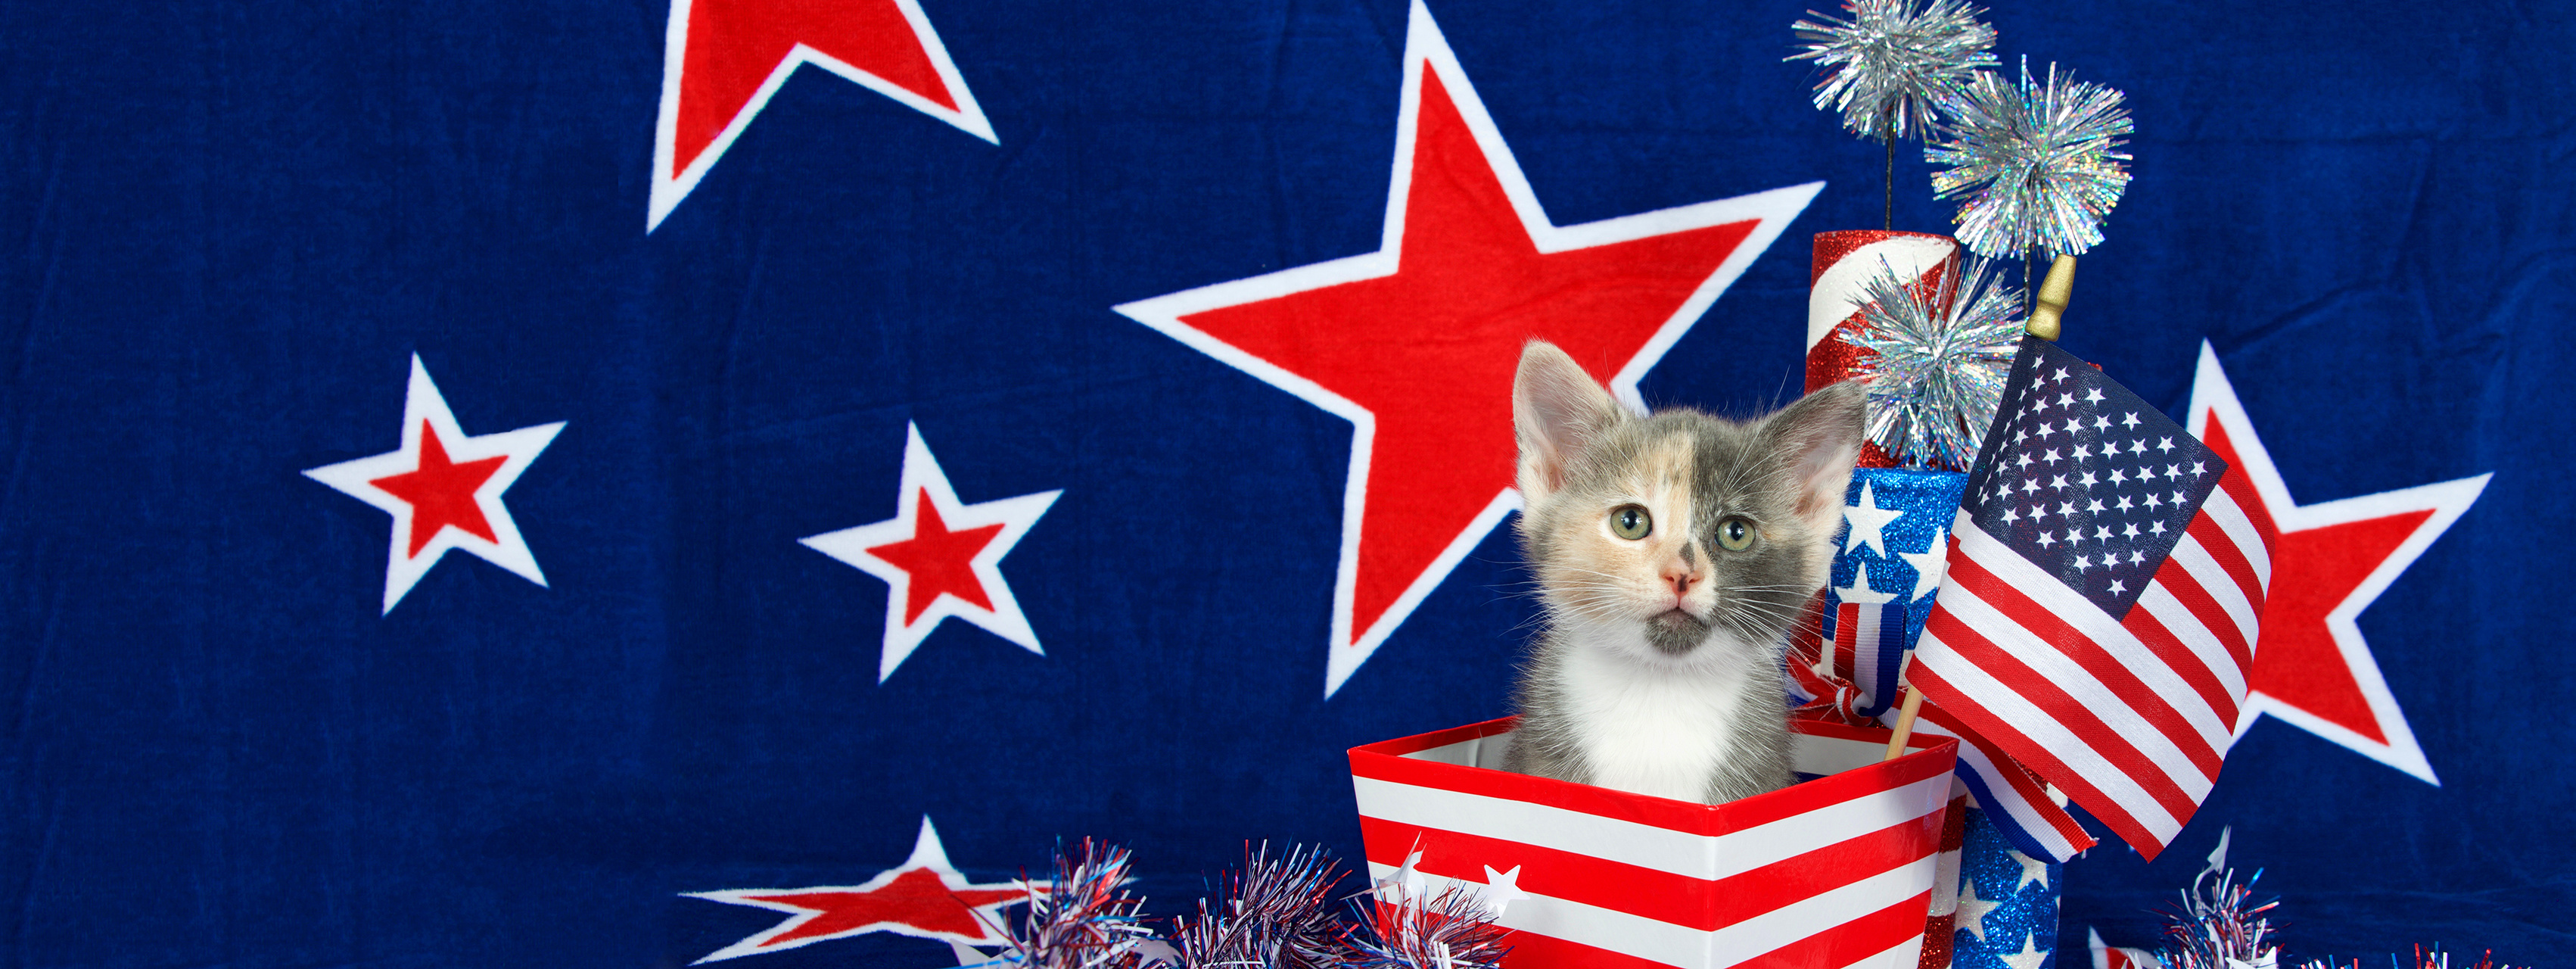 Helping Your Cat Survive the 4th of July